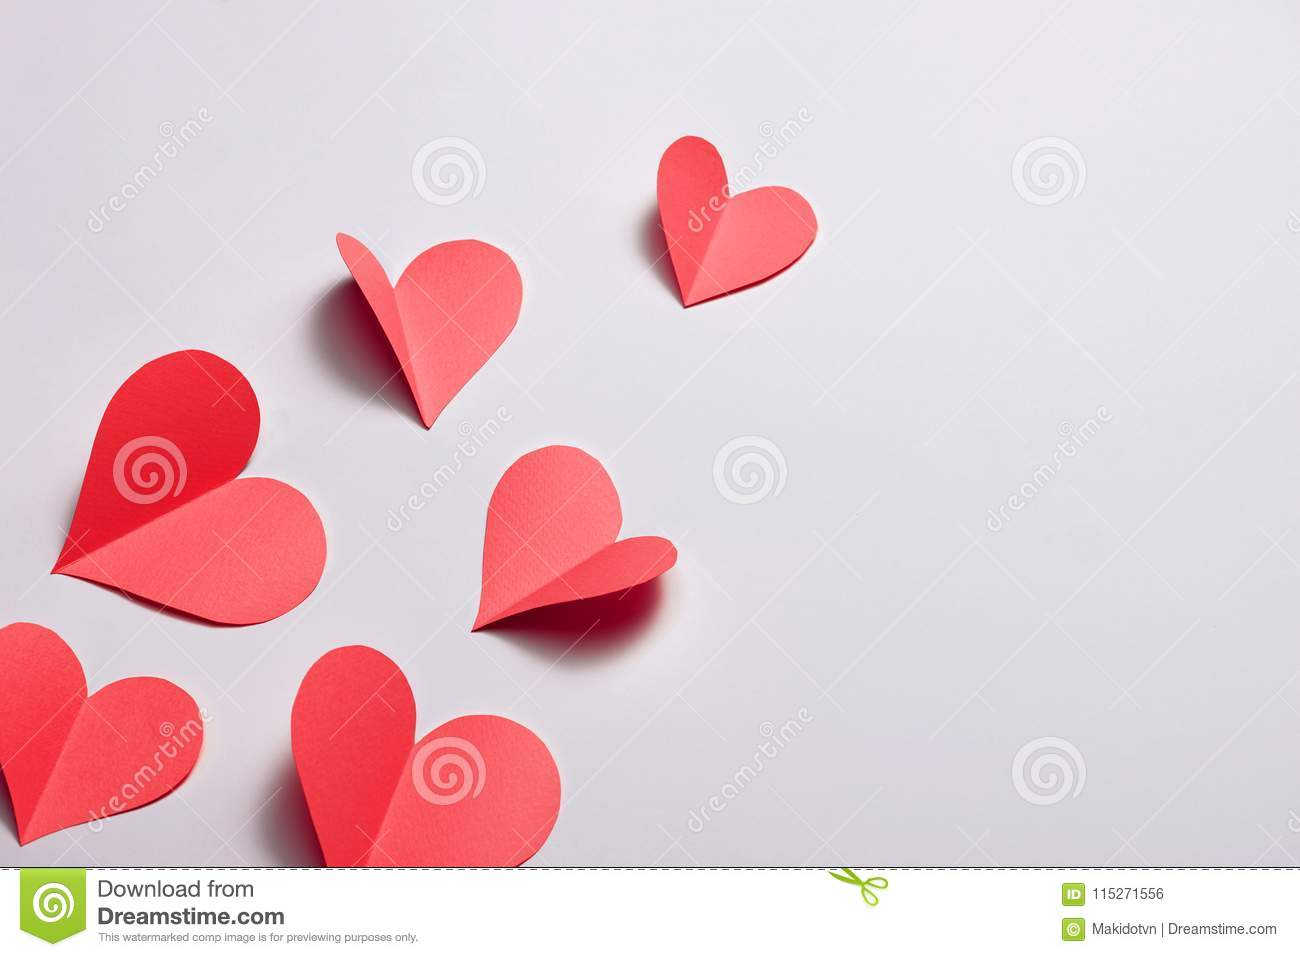 Fold paper Red hearts {Paper Heart cutting}, Heart of paper folding Isolated on White Background. Cards for Valentine`s Day There